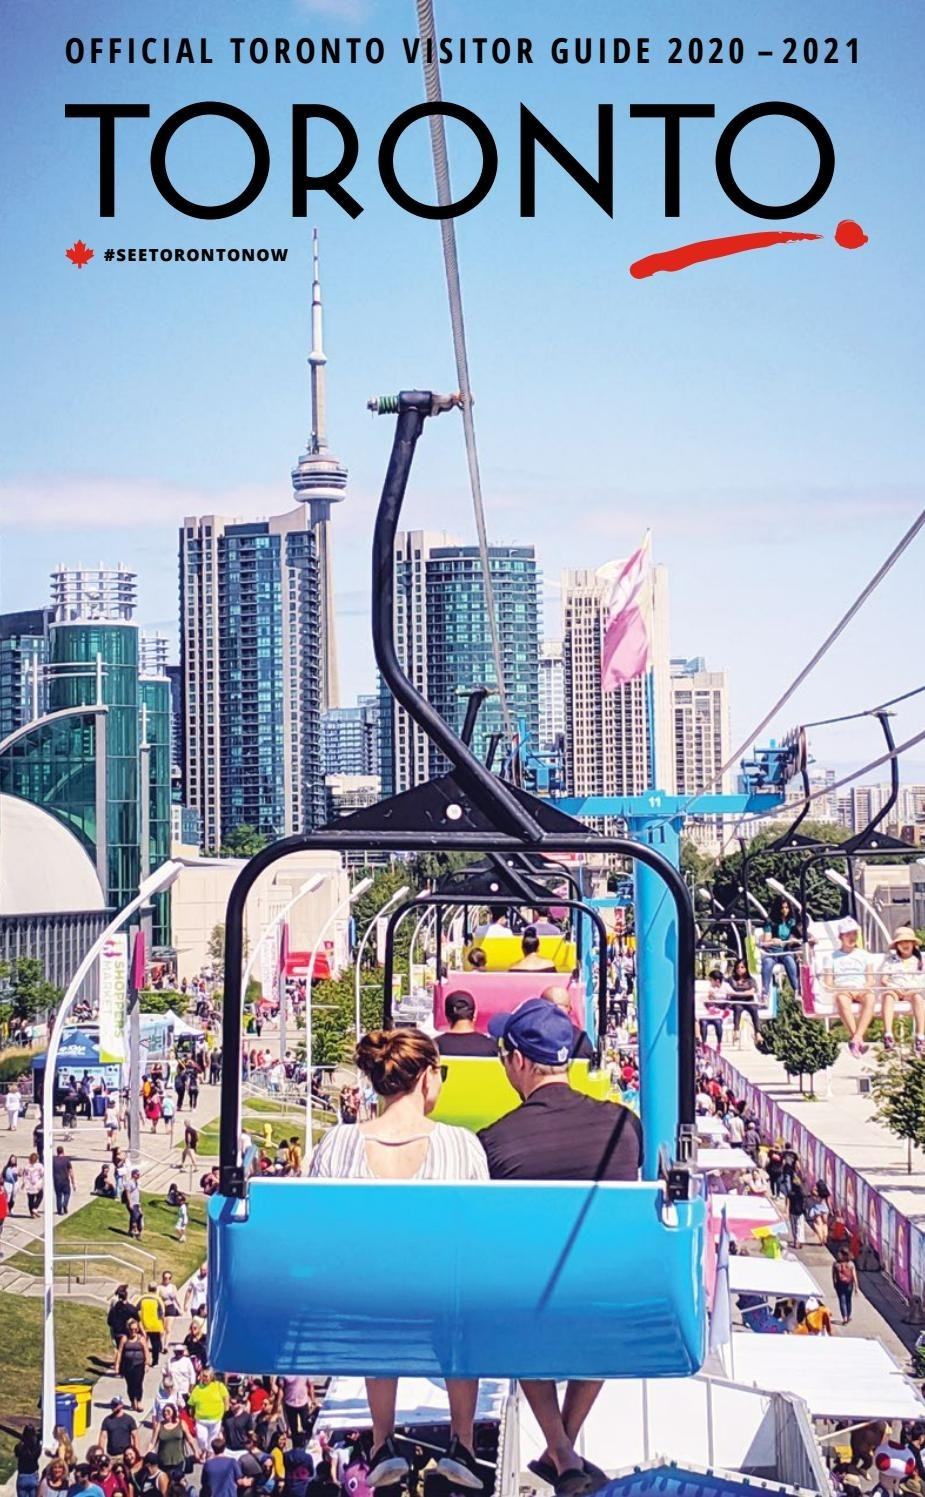 Toronto Visitor Guide 2020/21Tourism Toronto - Issuu  When Does The Rut Start 2021 Southern Ontario